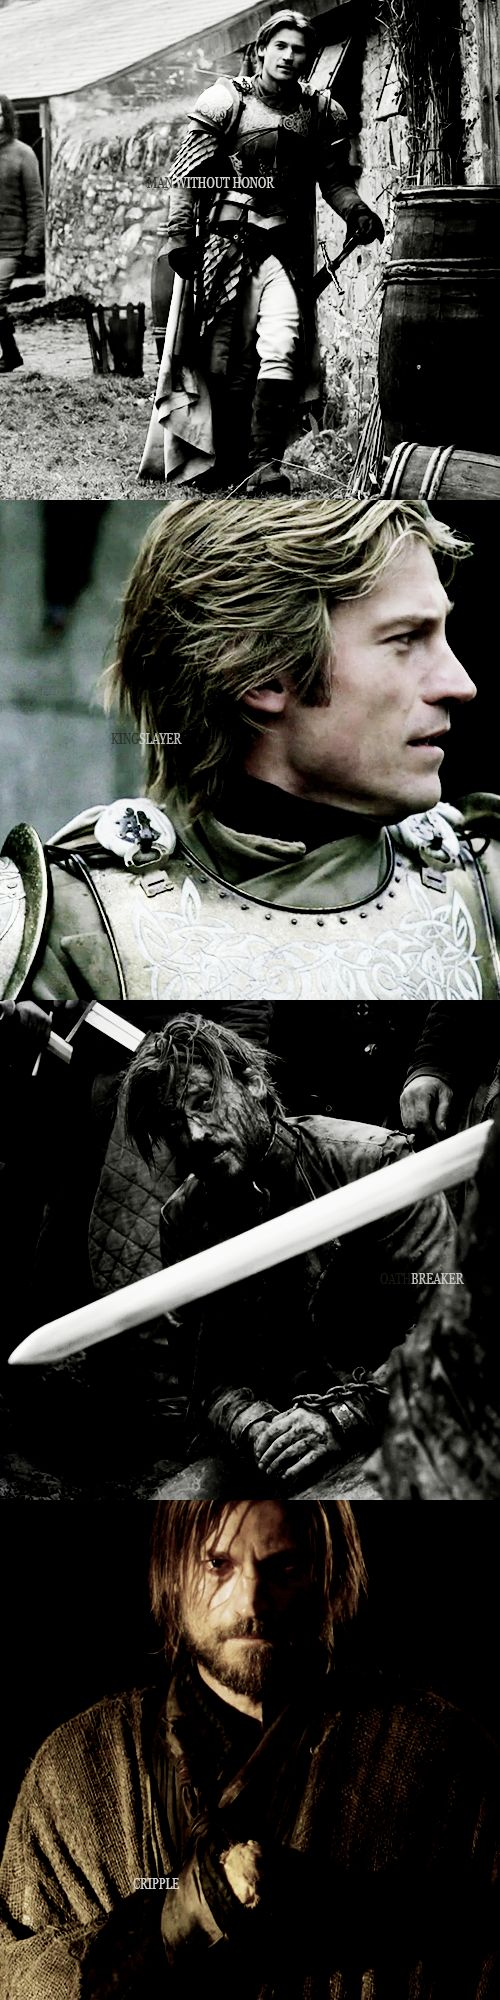 """Jaime. My name is Jaime."" 